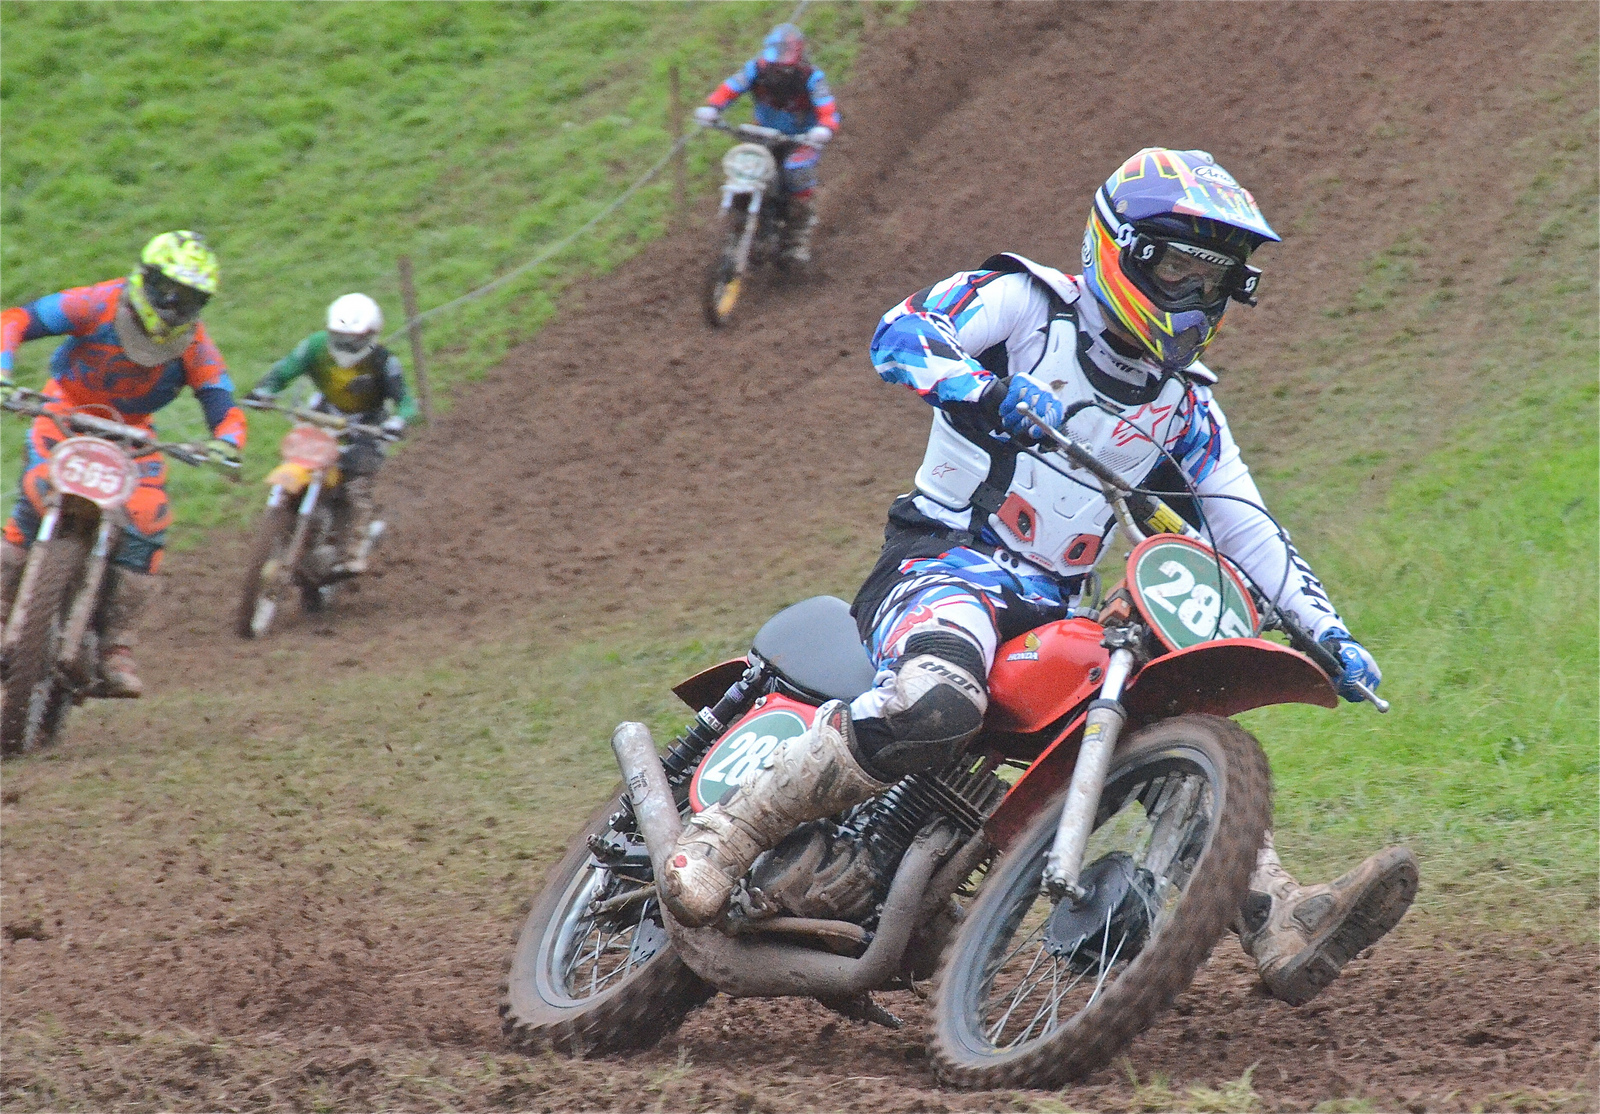 Llanthony Classic Scramble Photos September 2015 classicdirtbikerider.com..58